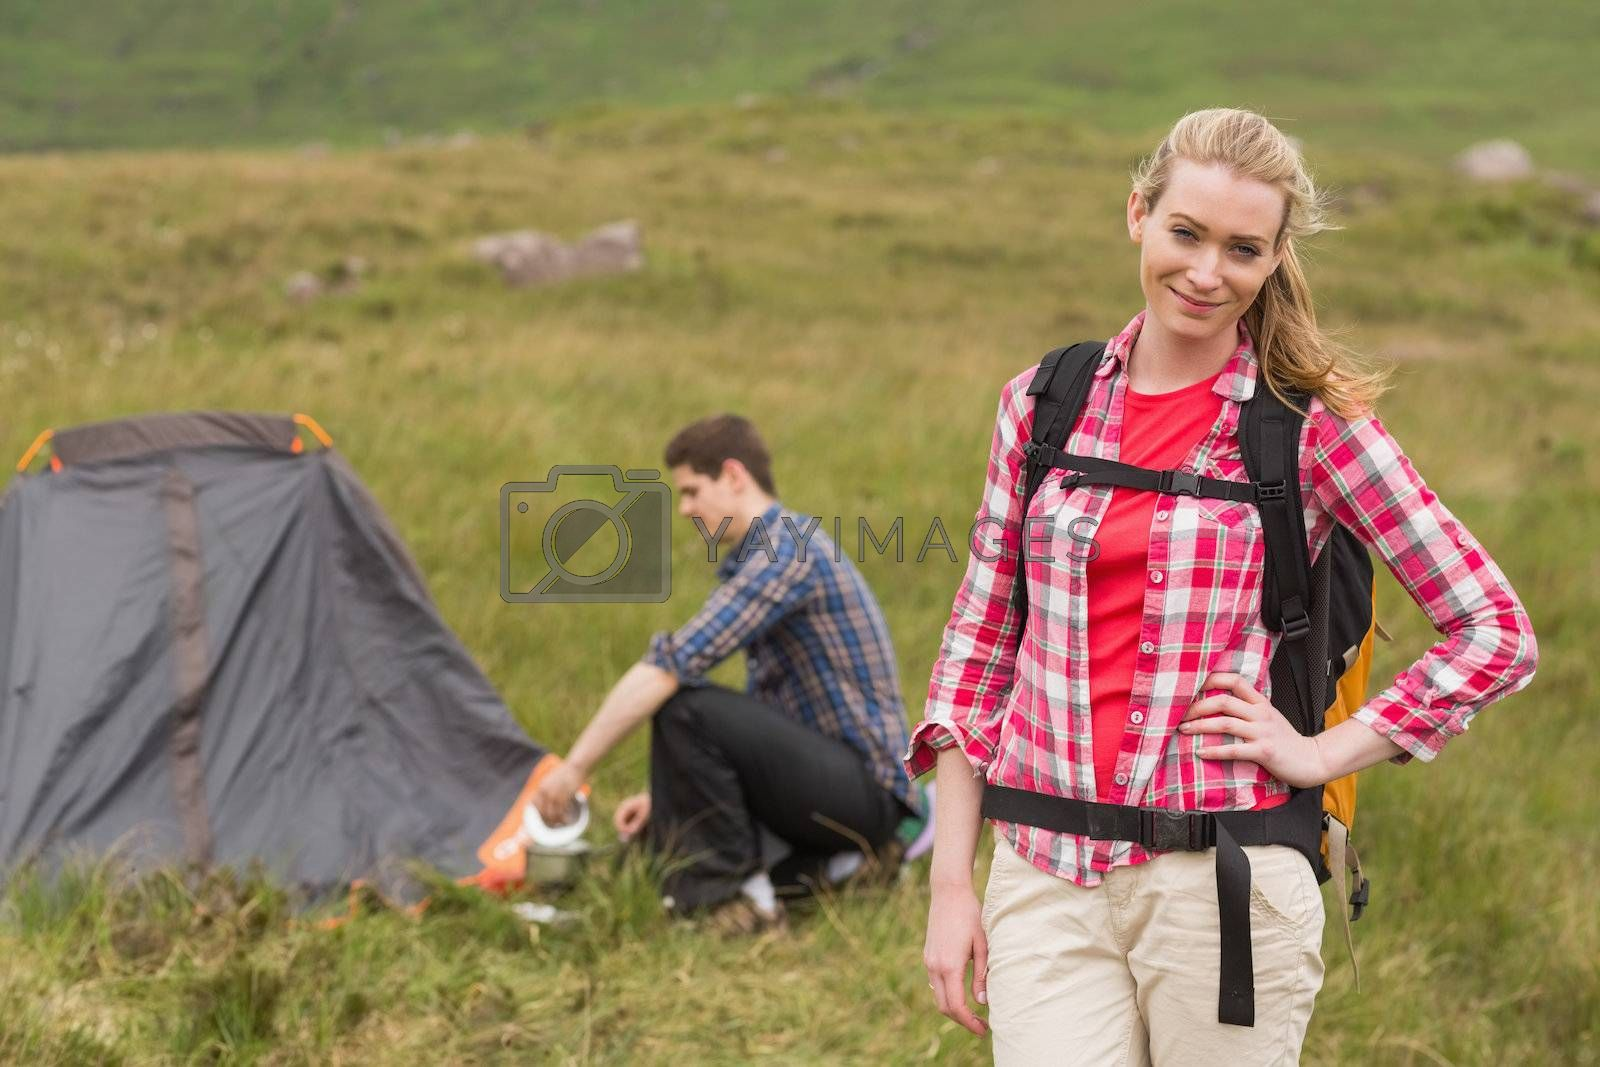 Cheerful woman carrying backpack while boyfriend is pitching tent by Wavebreakmedia